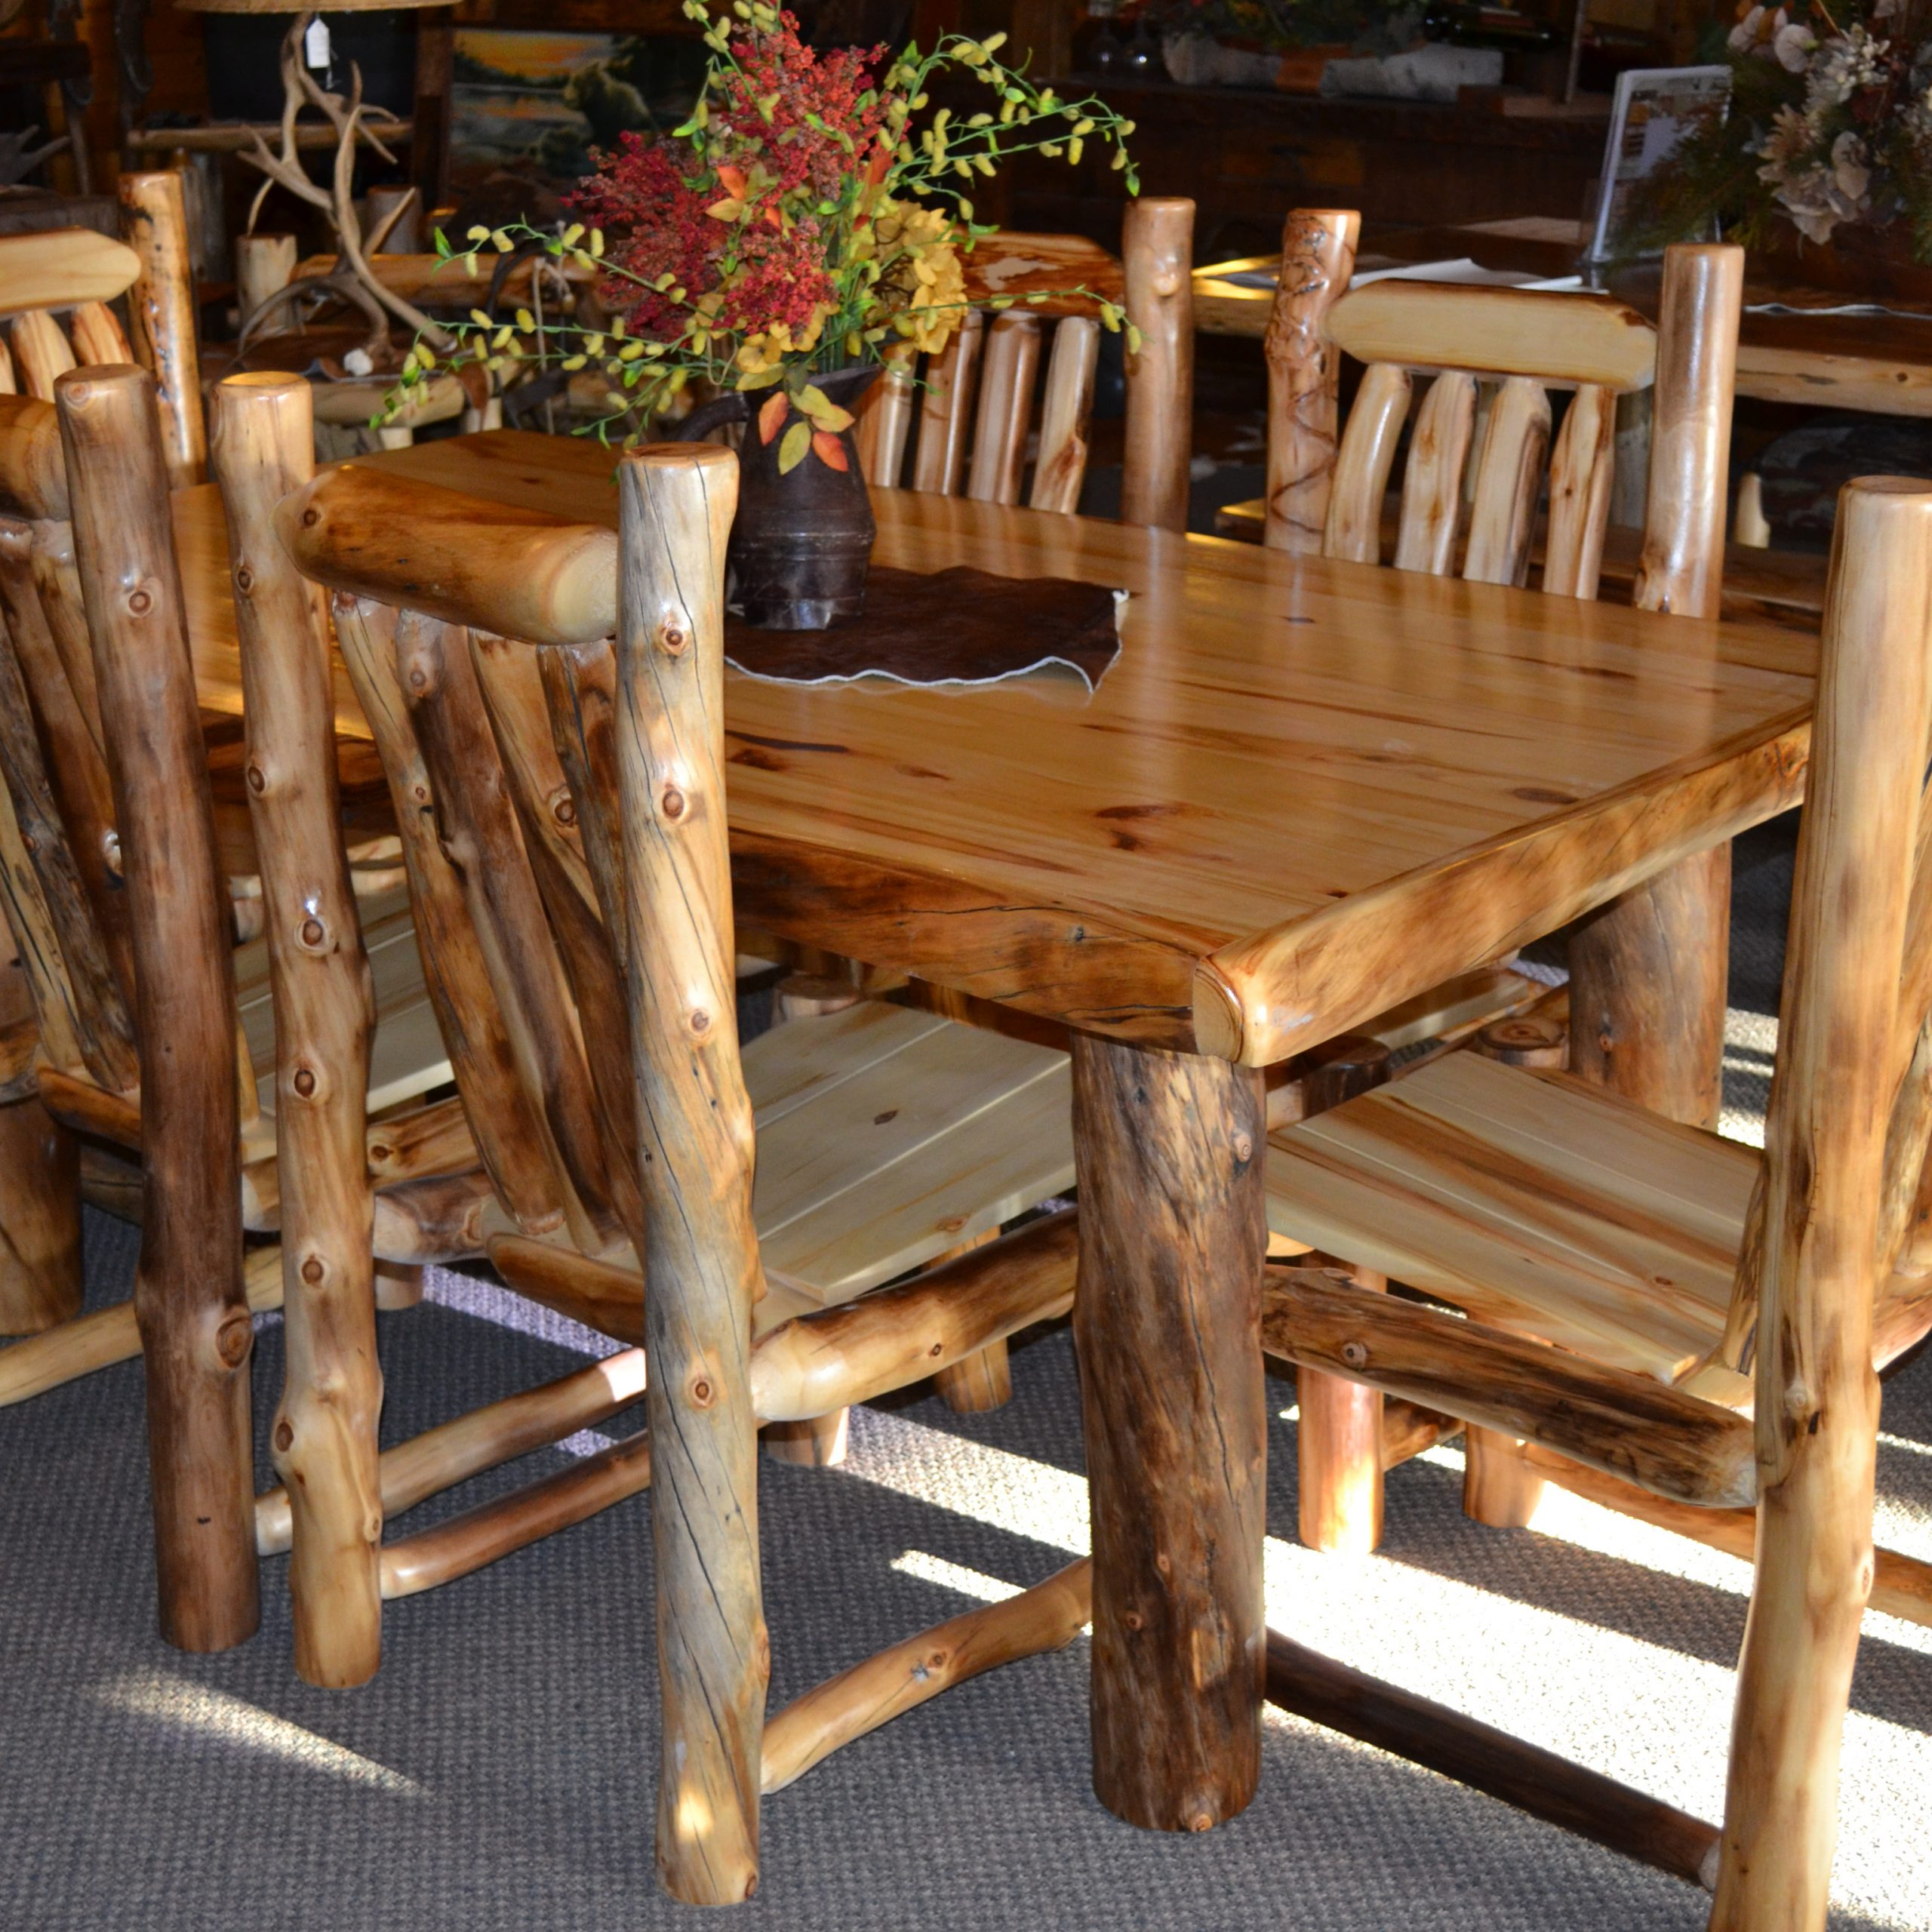 Favorite Small Rustic Look Dining Tables For For Dimensions Chandelier Big Inches Sets Length Everyd (View 24 of 25)